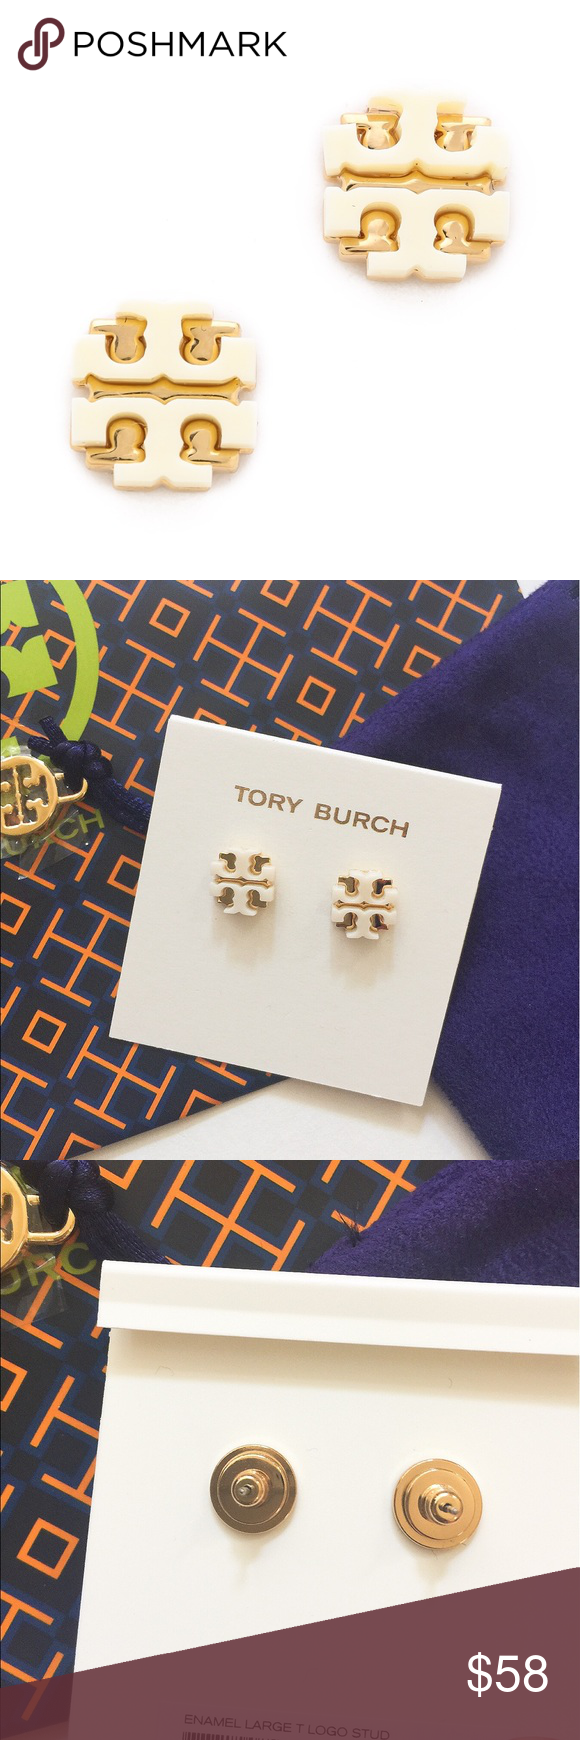 6606e1144330 NWT Tory Burch enamel large T logo stud earrings Brand new with tag. Never  worn